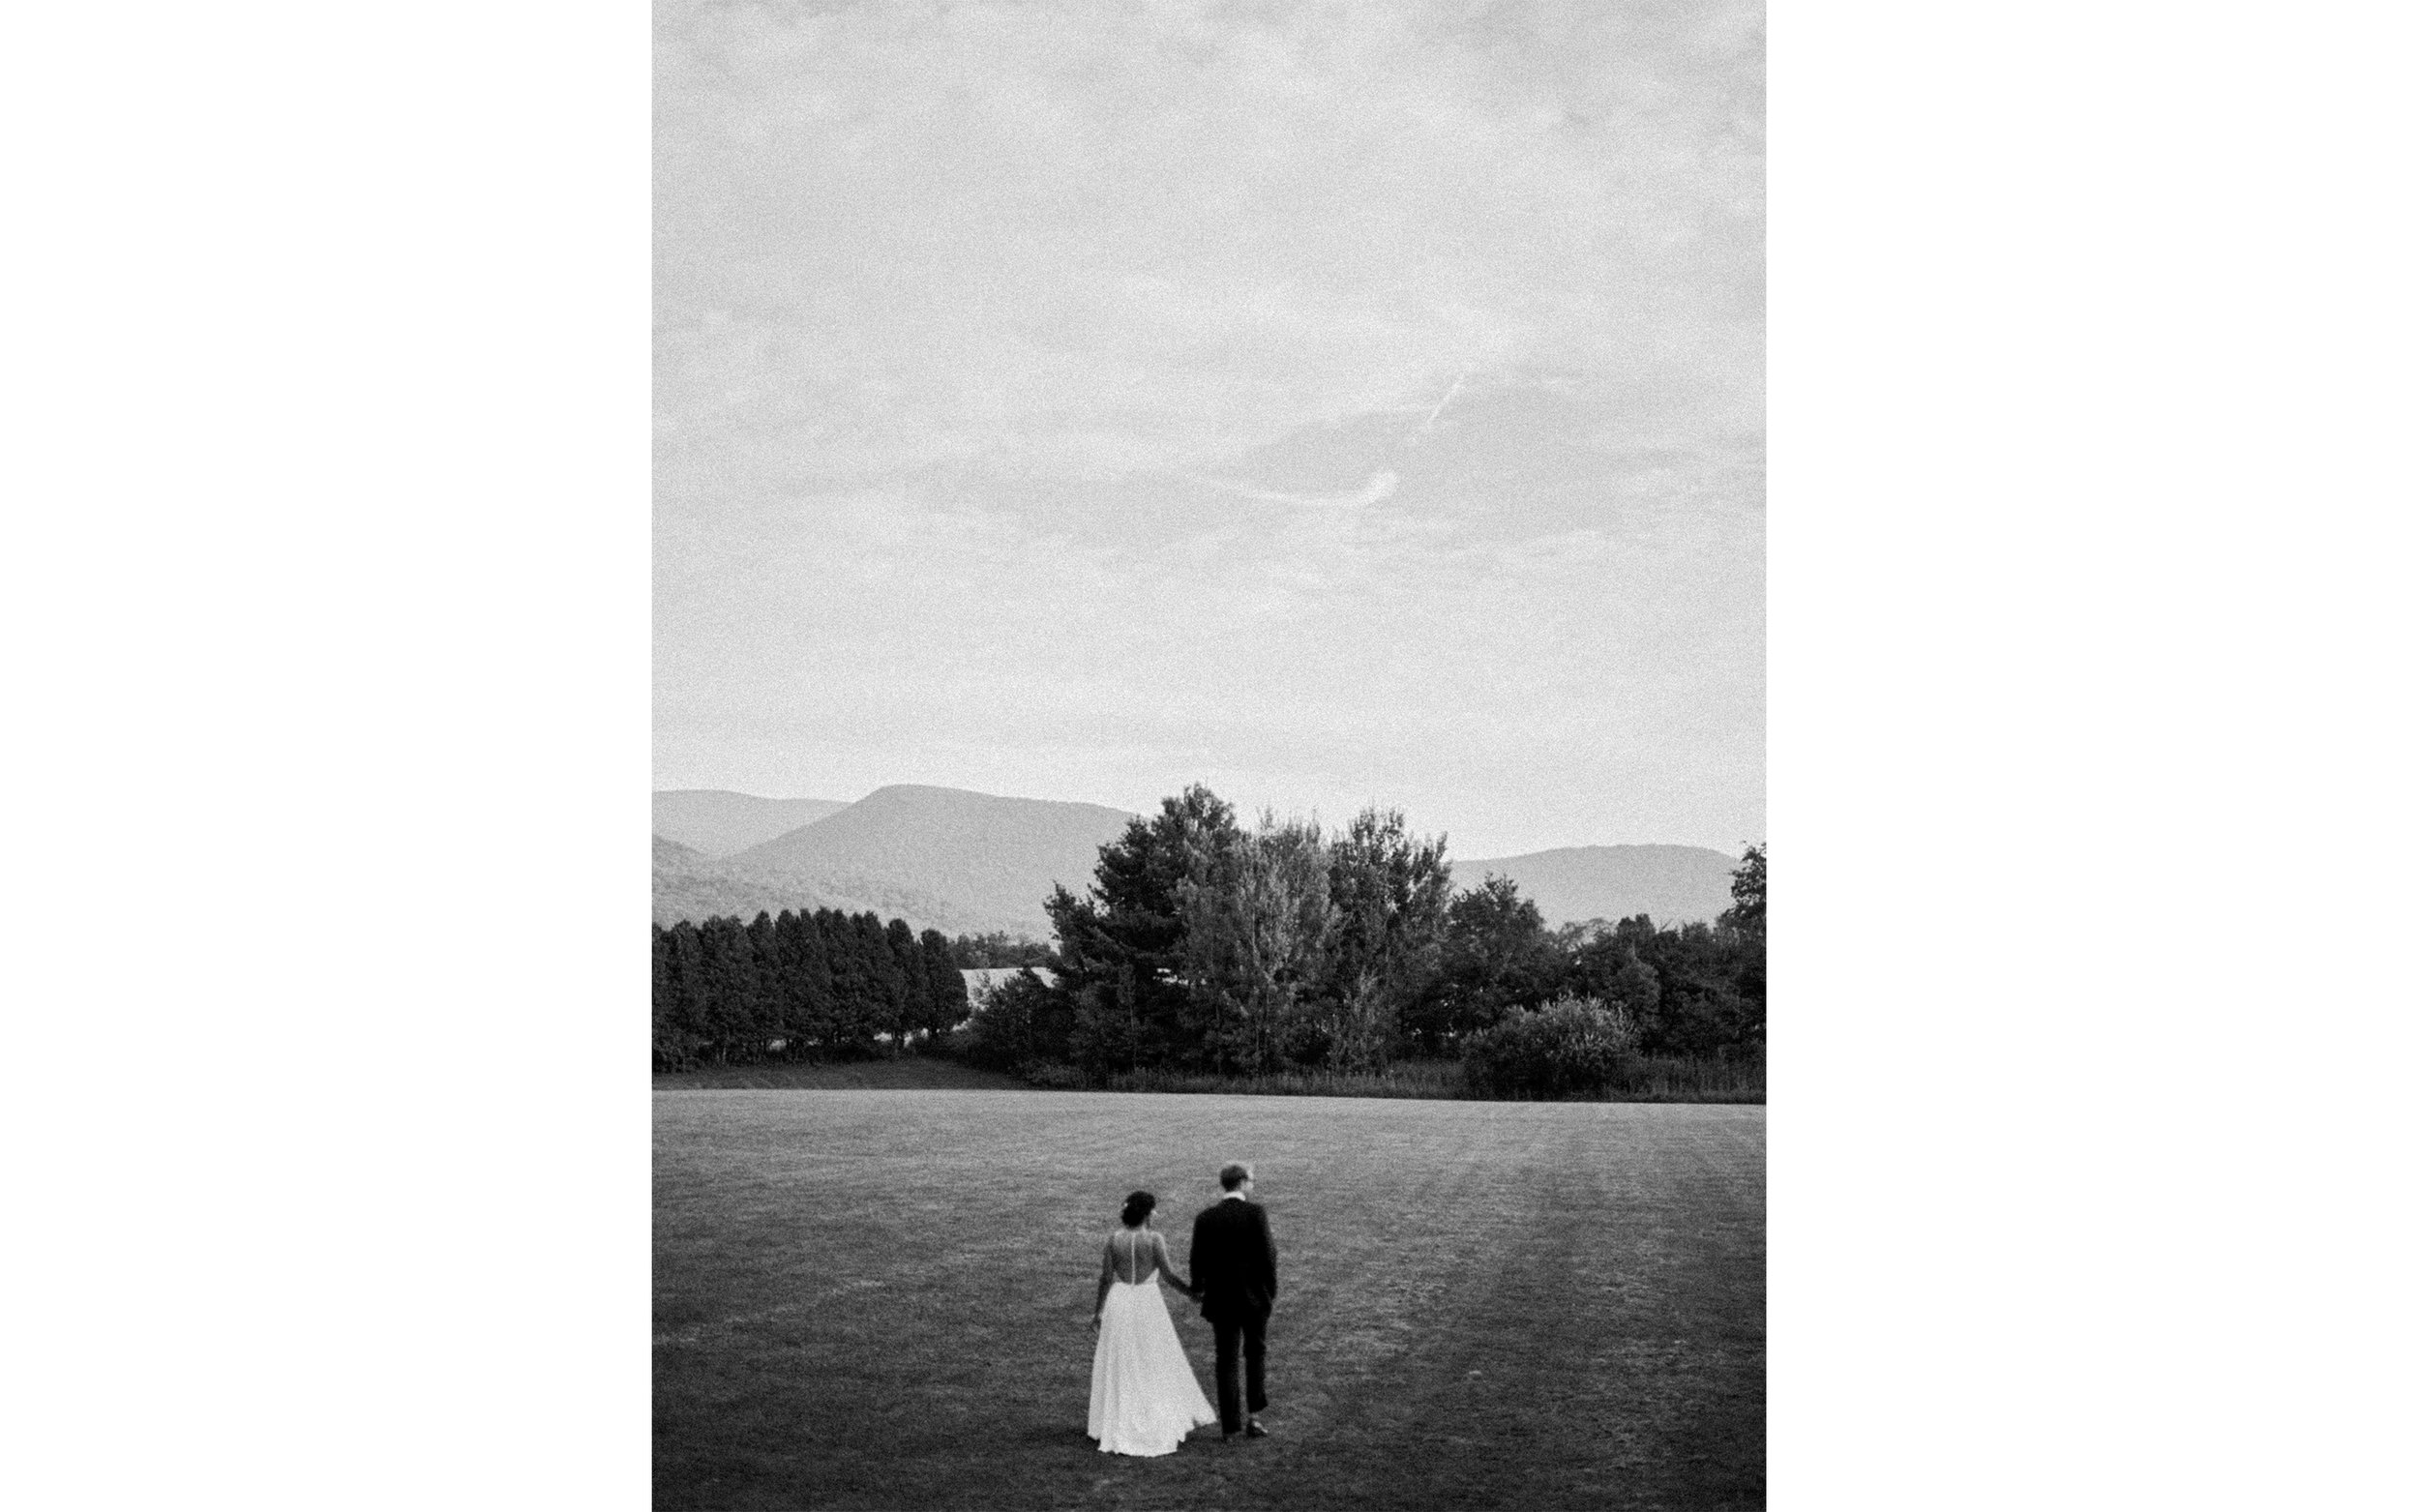 Berkshires Wedding Fine Art Wedding Photographer_Meg Haley Photographs_029.jpg